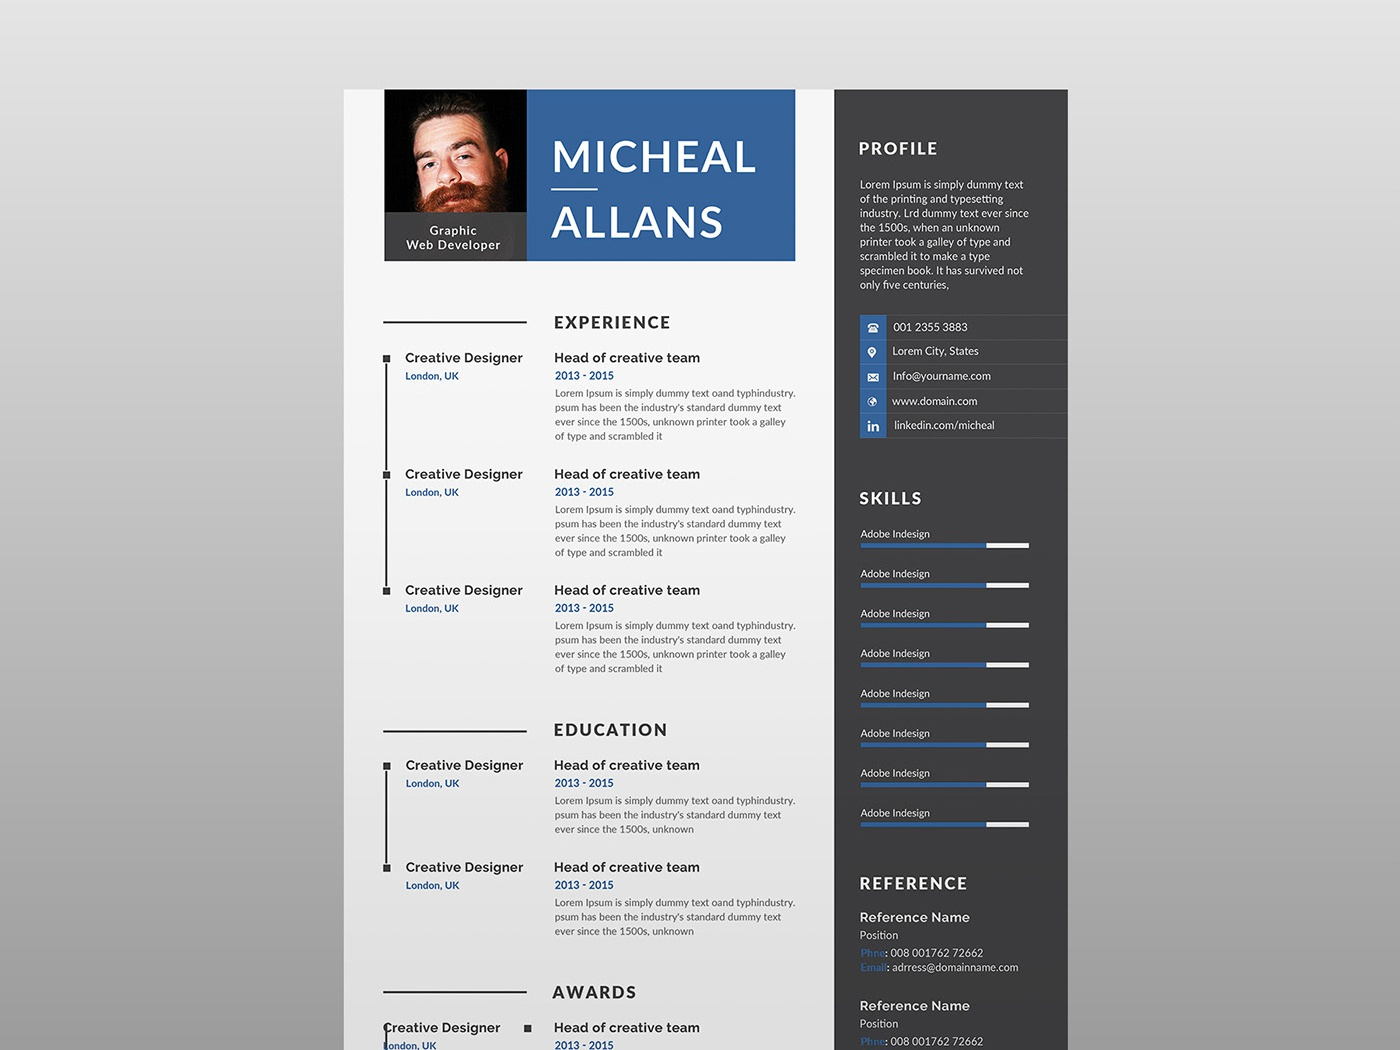 Free Resume Template With Two Color Version By James Han On Dribbble